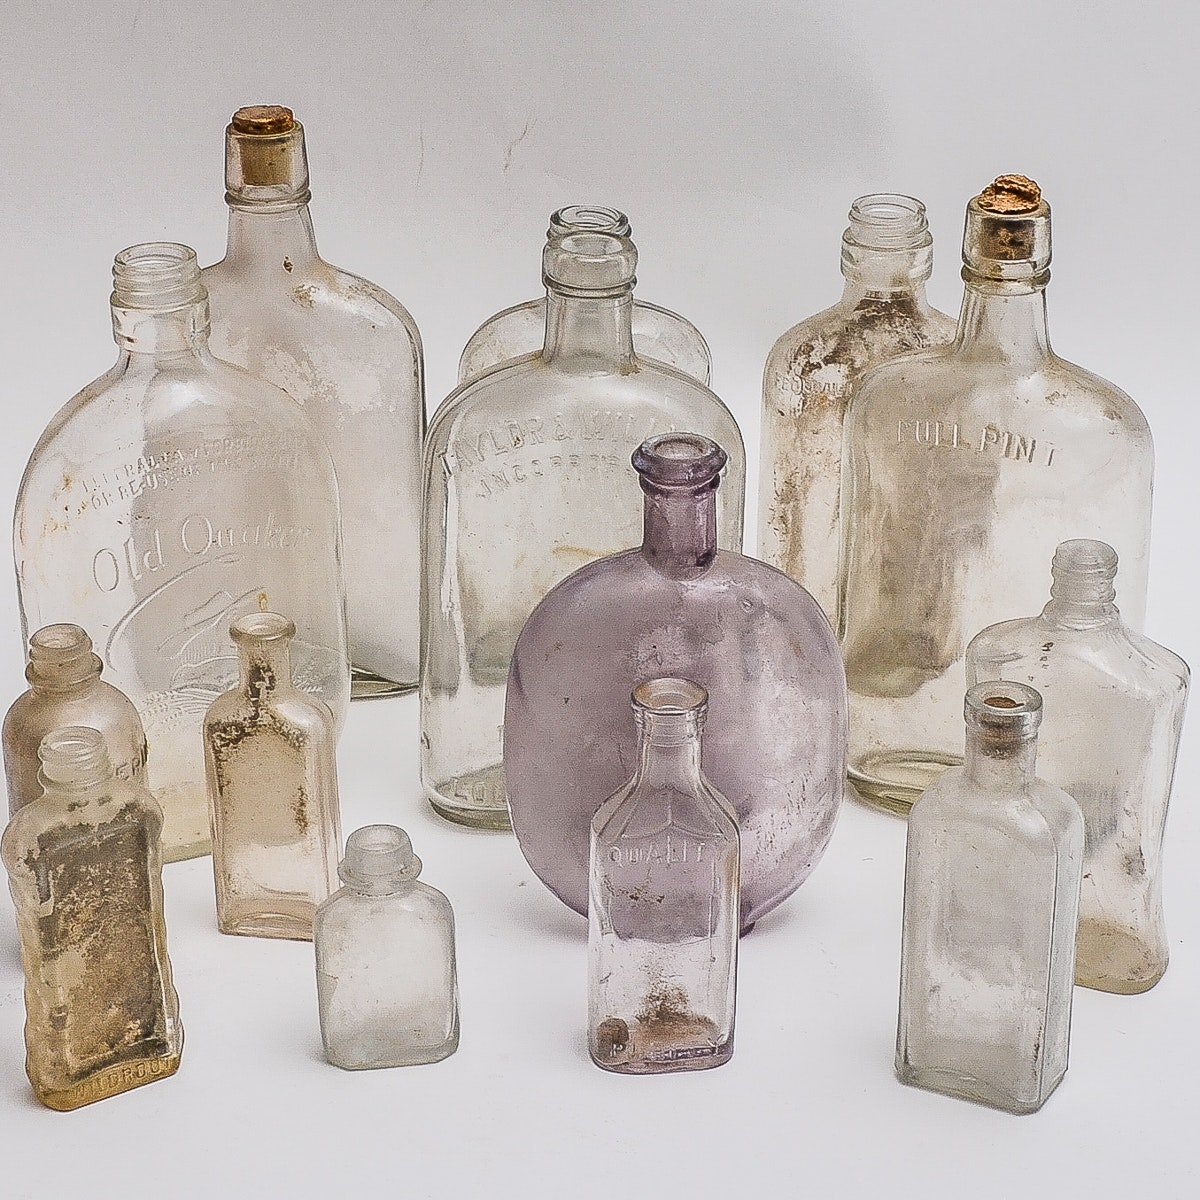 Collection of Antique Glass Bottles